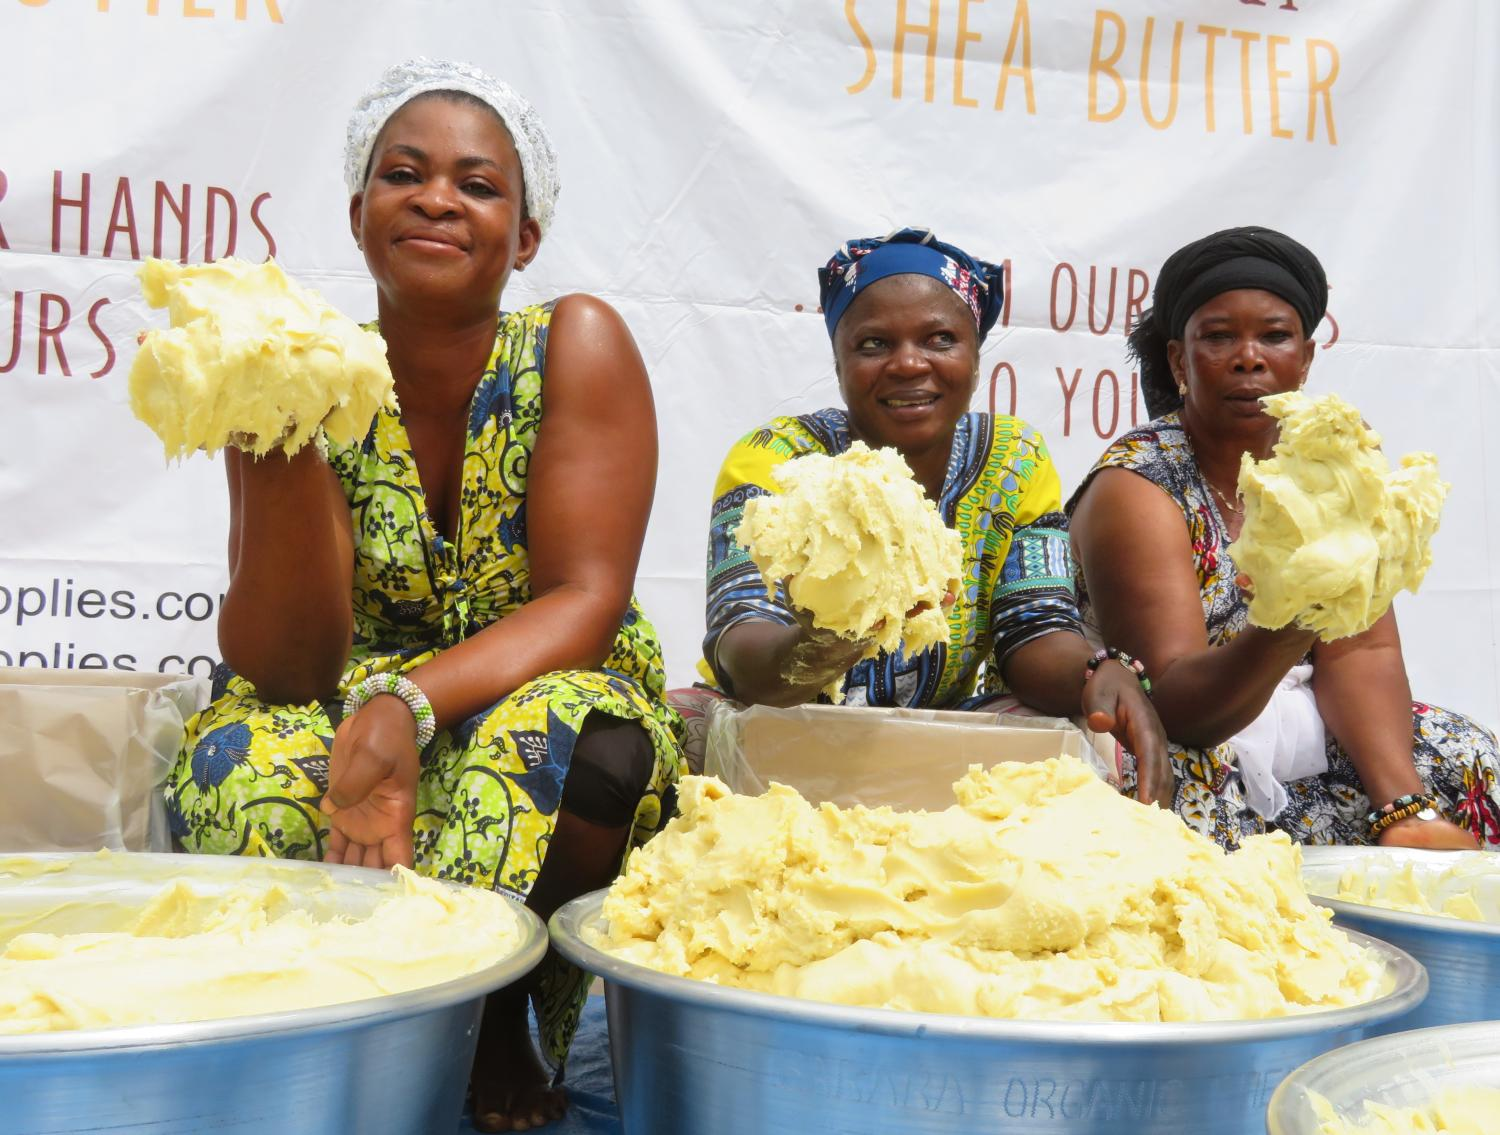 Just because your company may be a small social enterprise does not mean it cannot generate outsized impact. Just take a look at this shea butter company in Ghana.